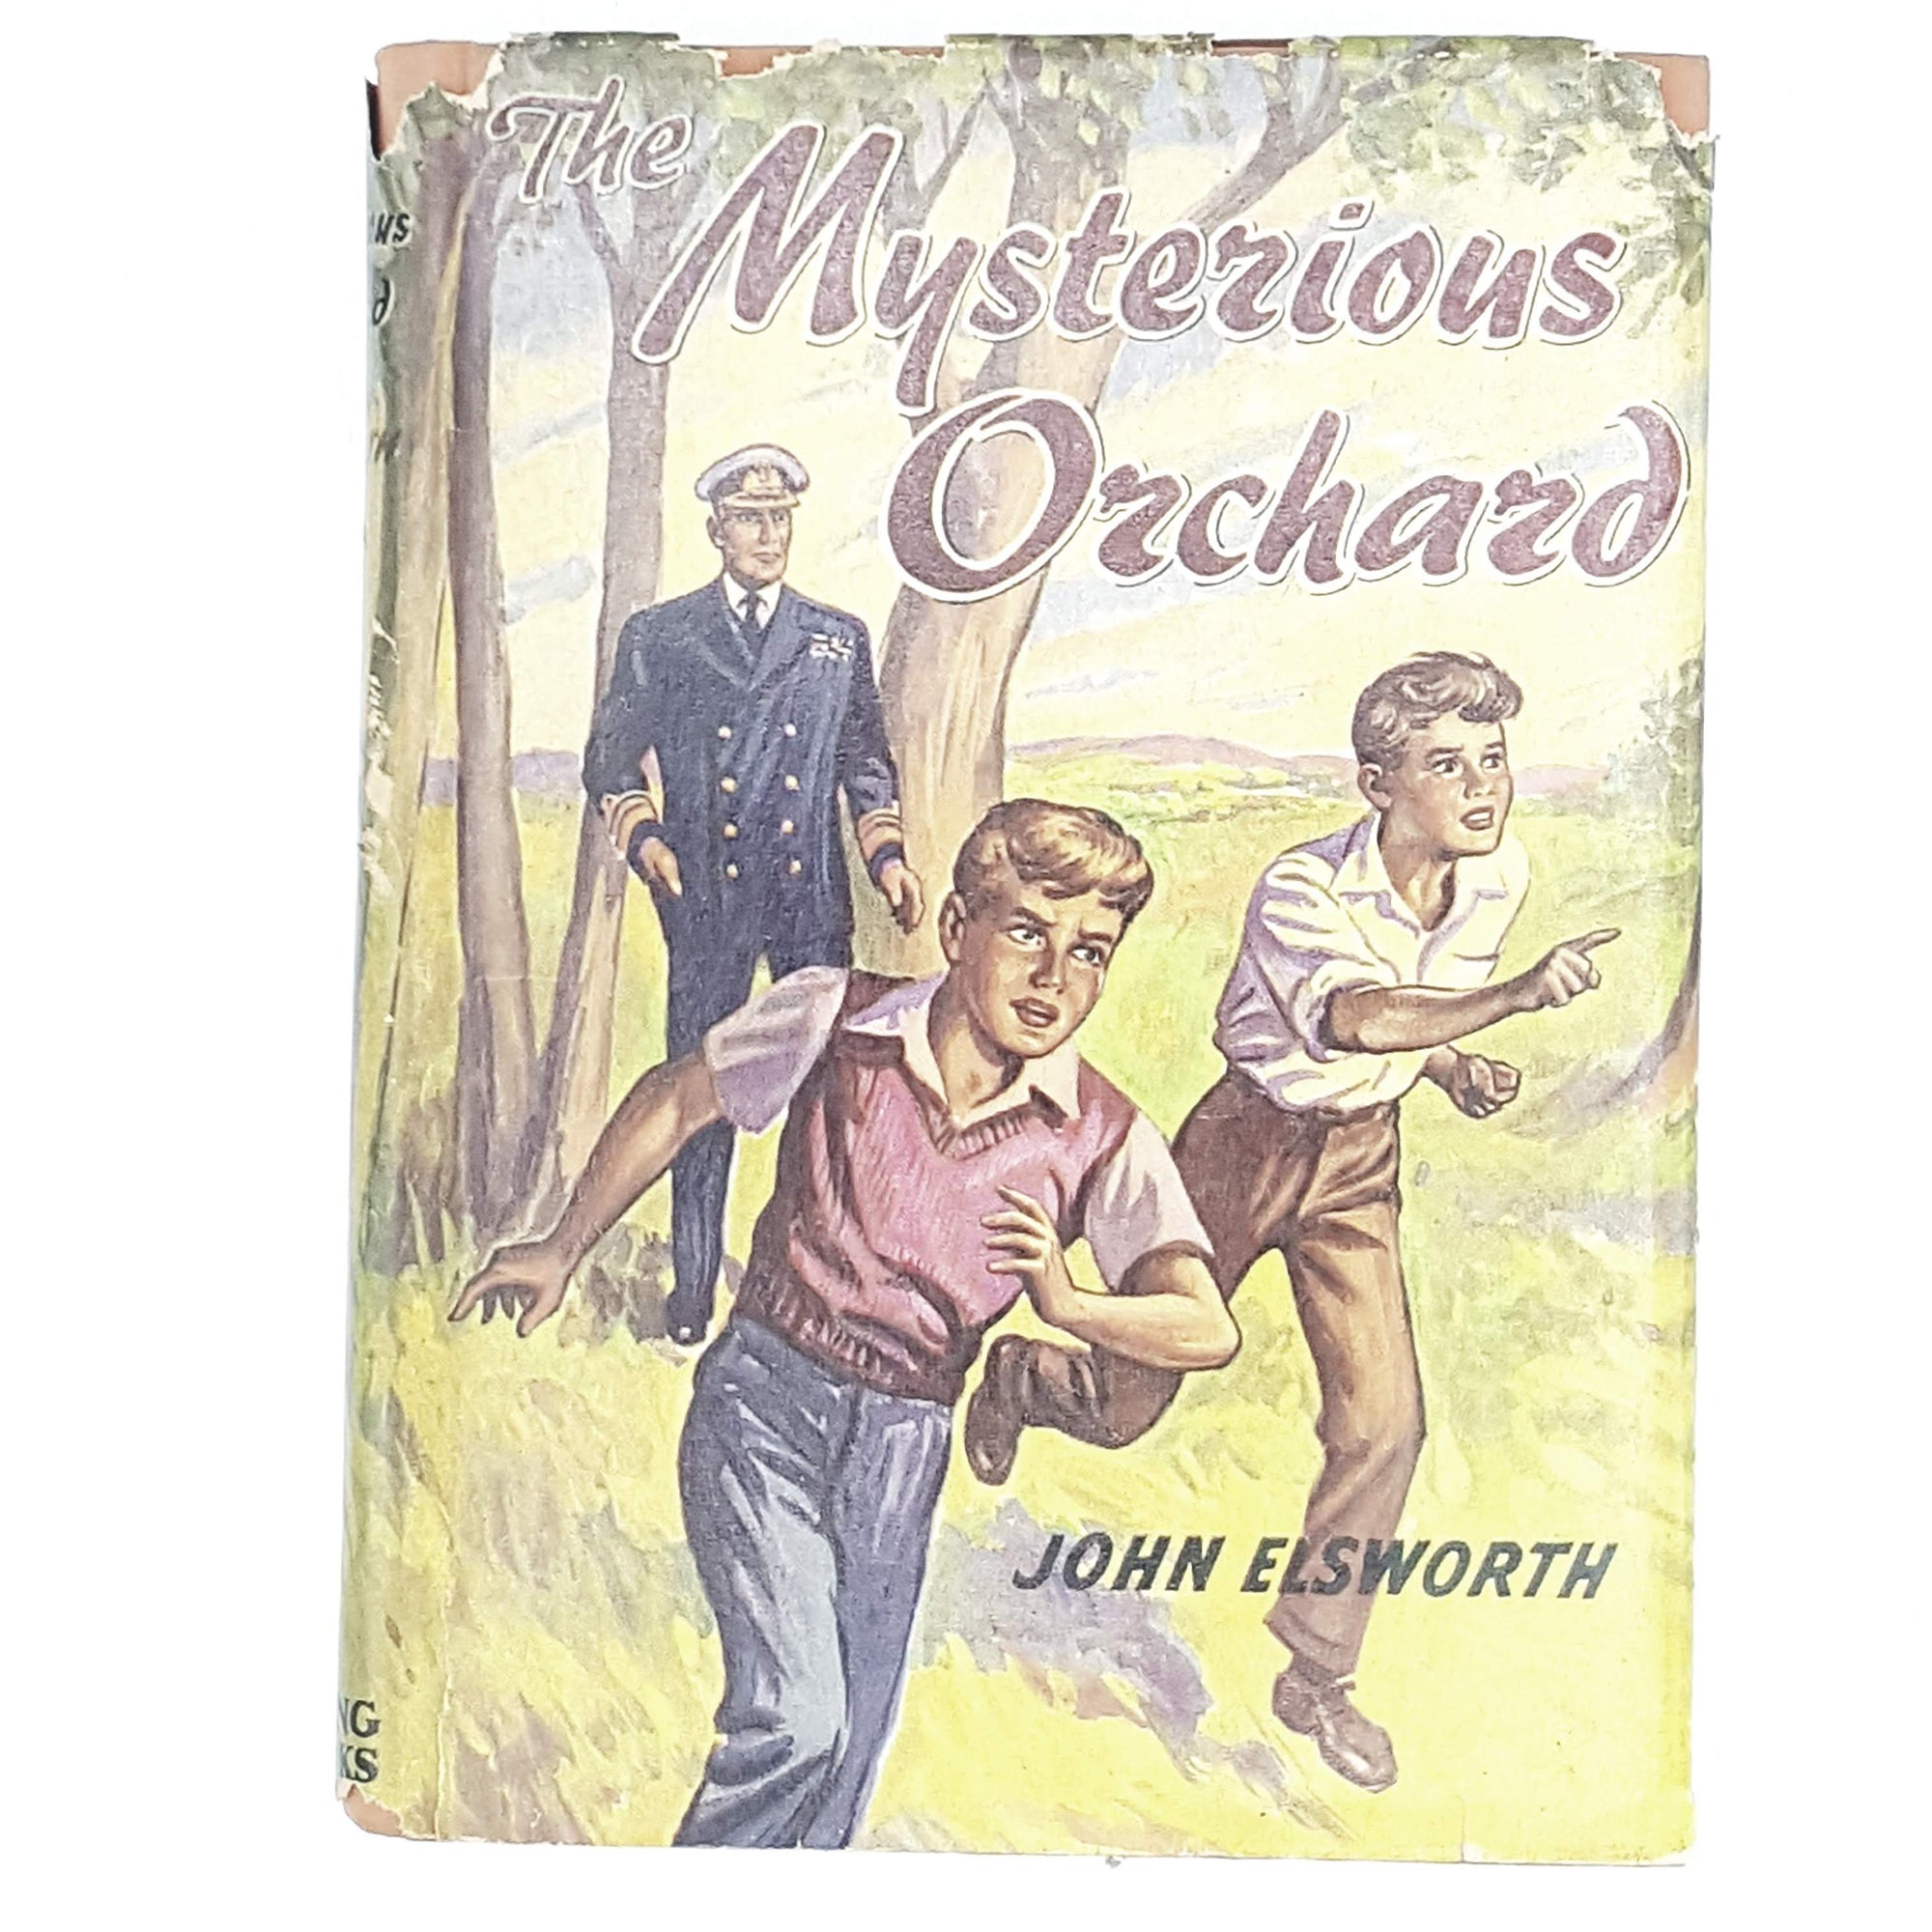 Vintage Obscurity: The Mysterious Orchard by John Elsworth